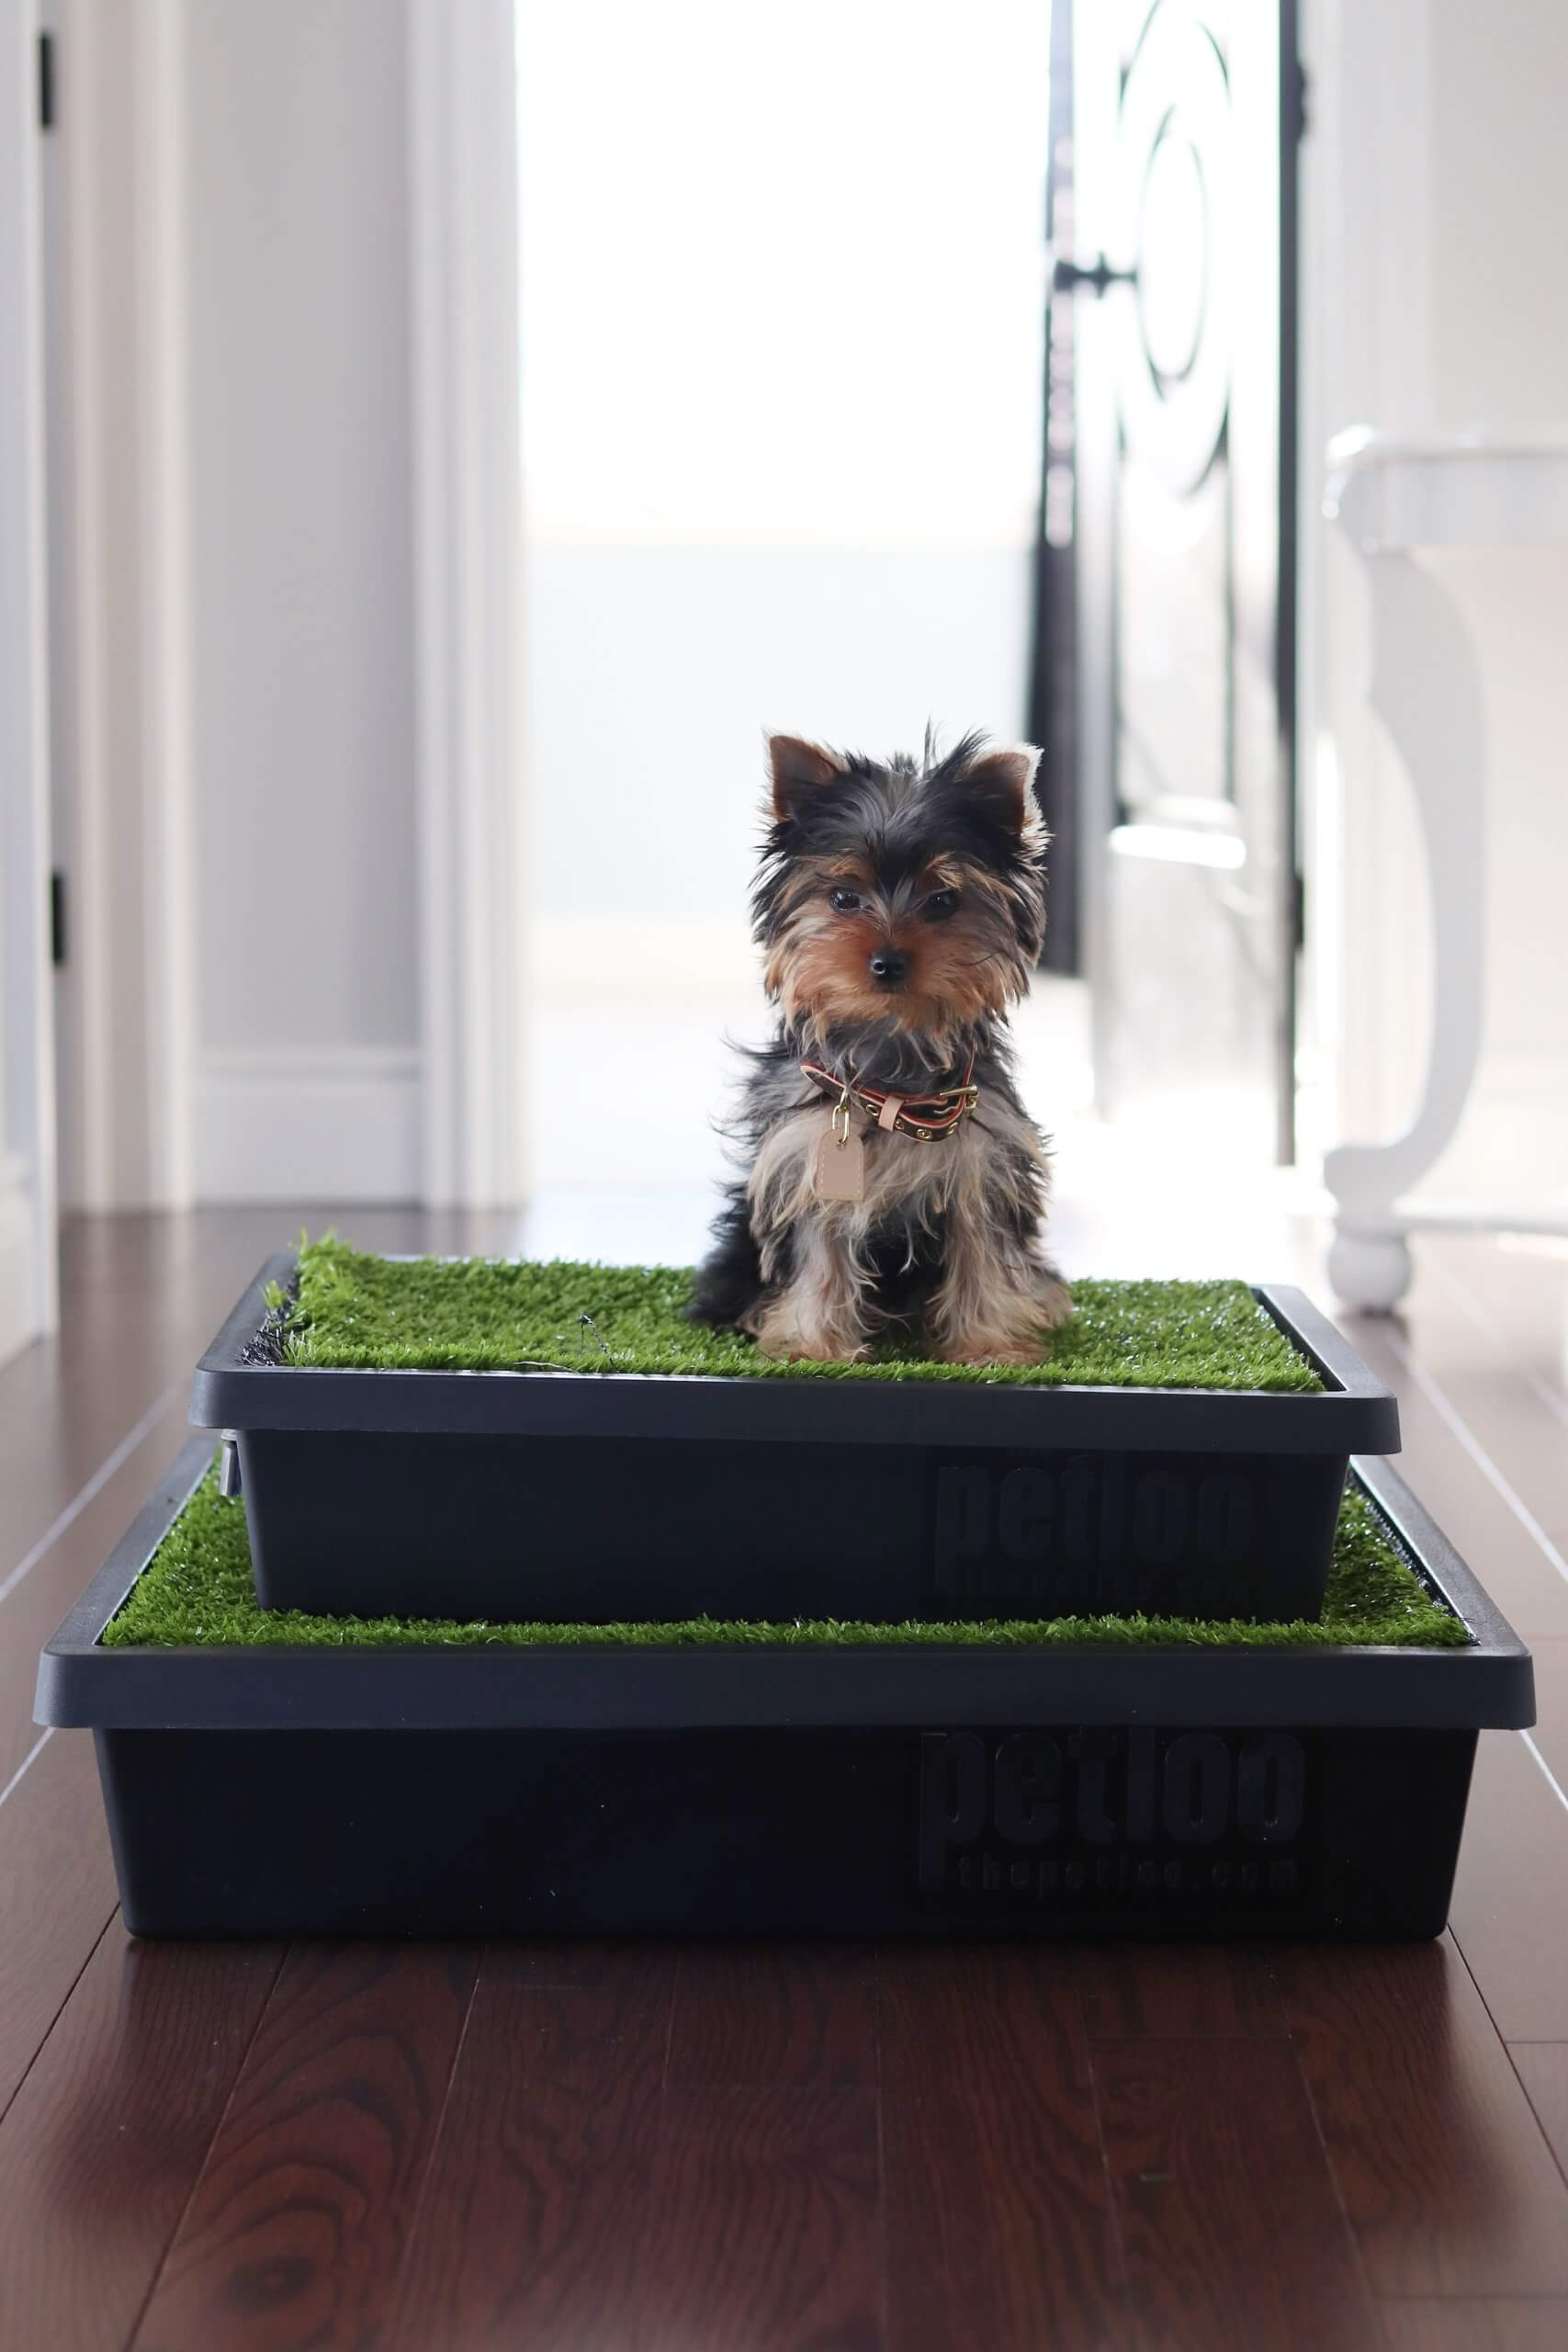 Puppy Training with the Pet Loo Portable Pet Toilet!